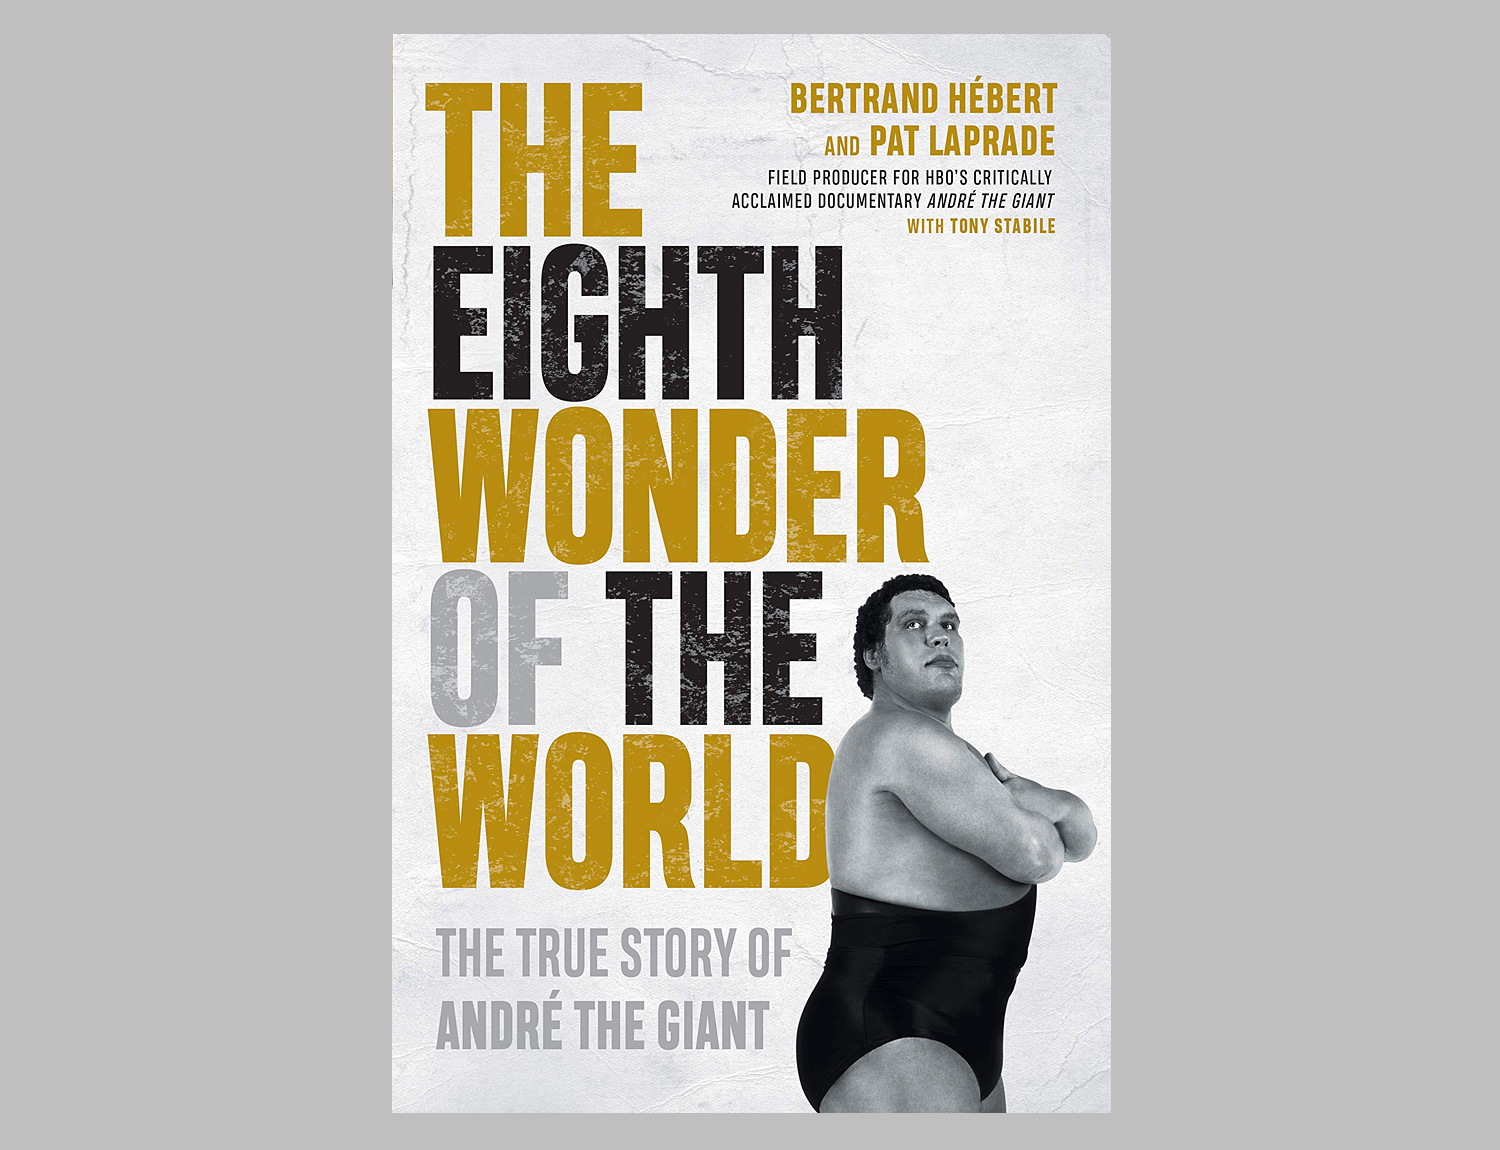 The Eighth Wonder of the World: The True Story of André the Giant at werd.com